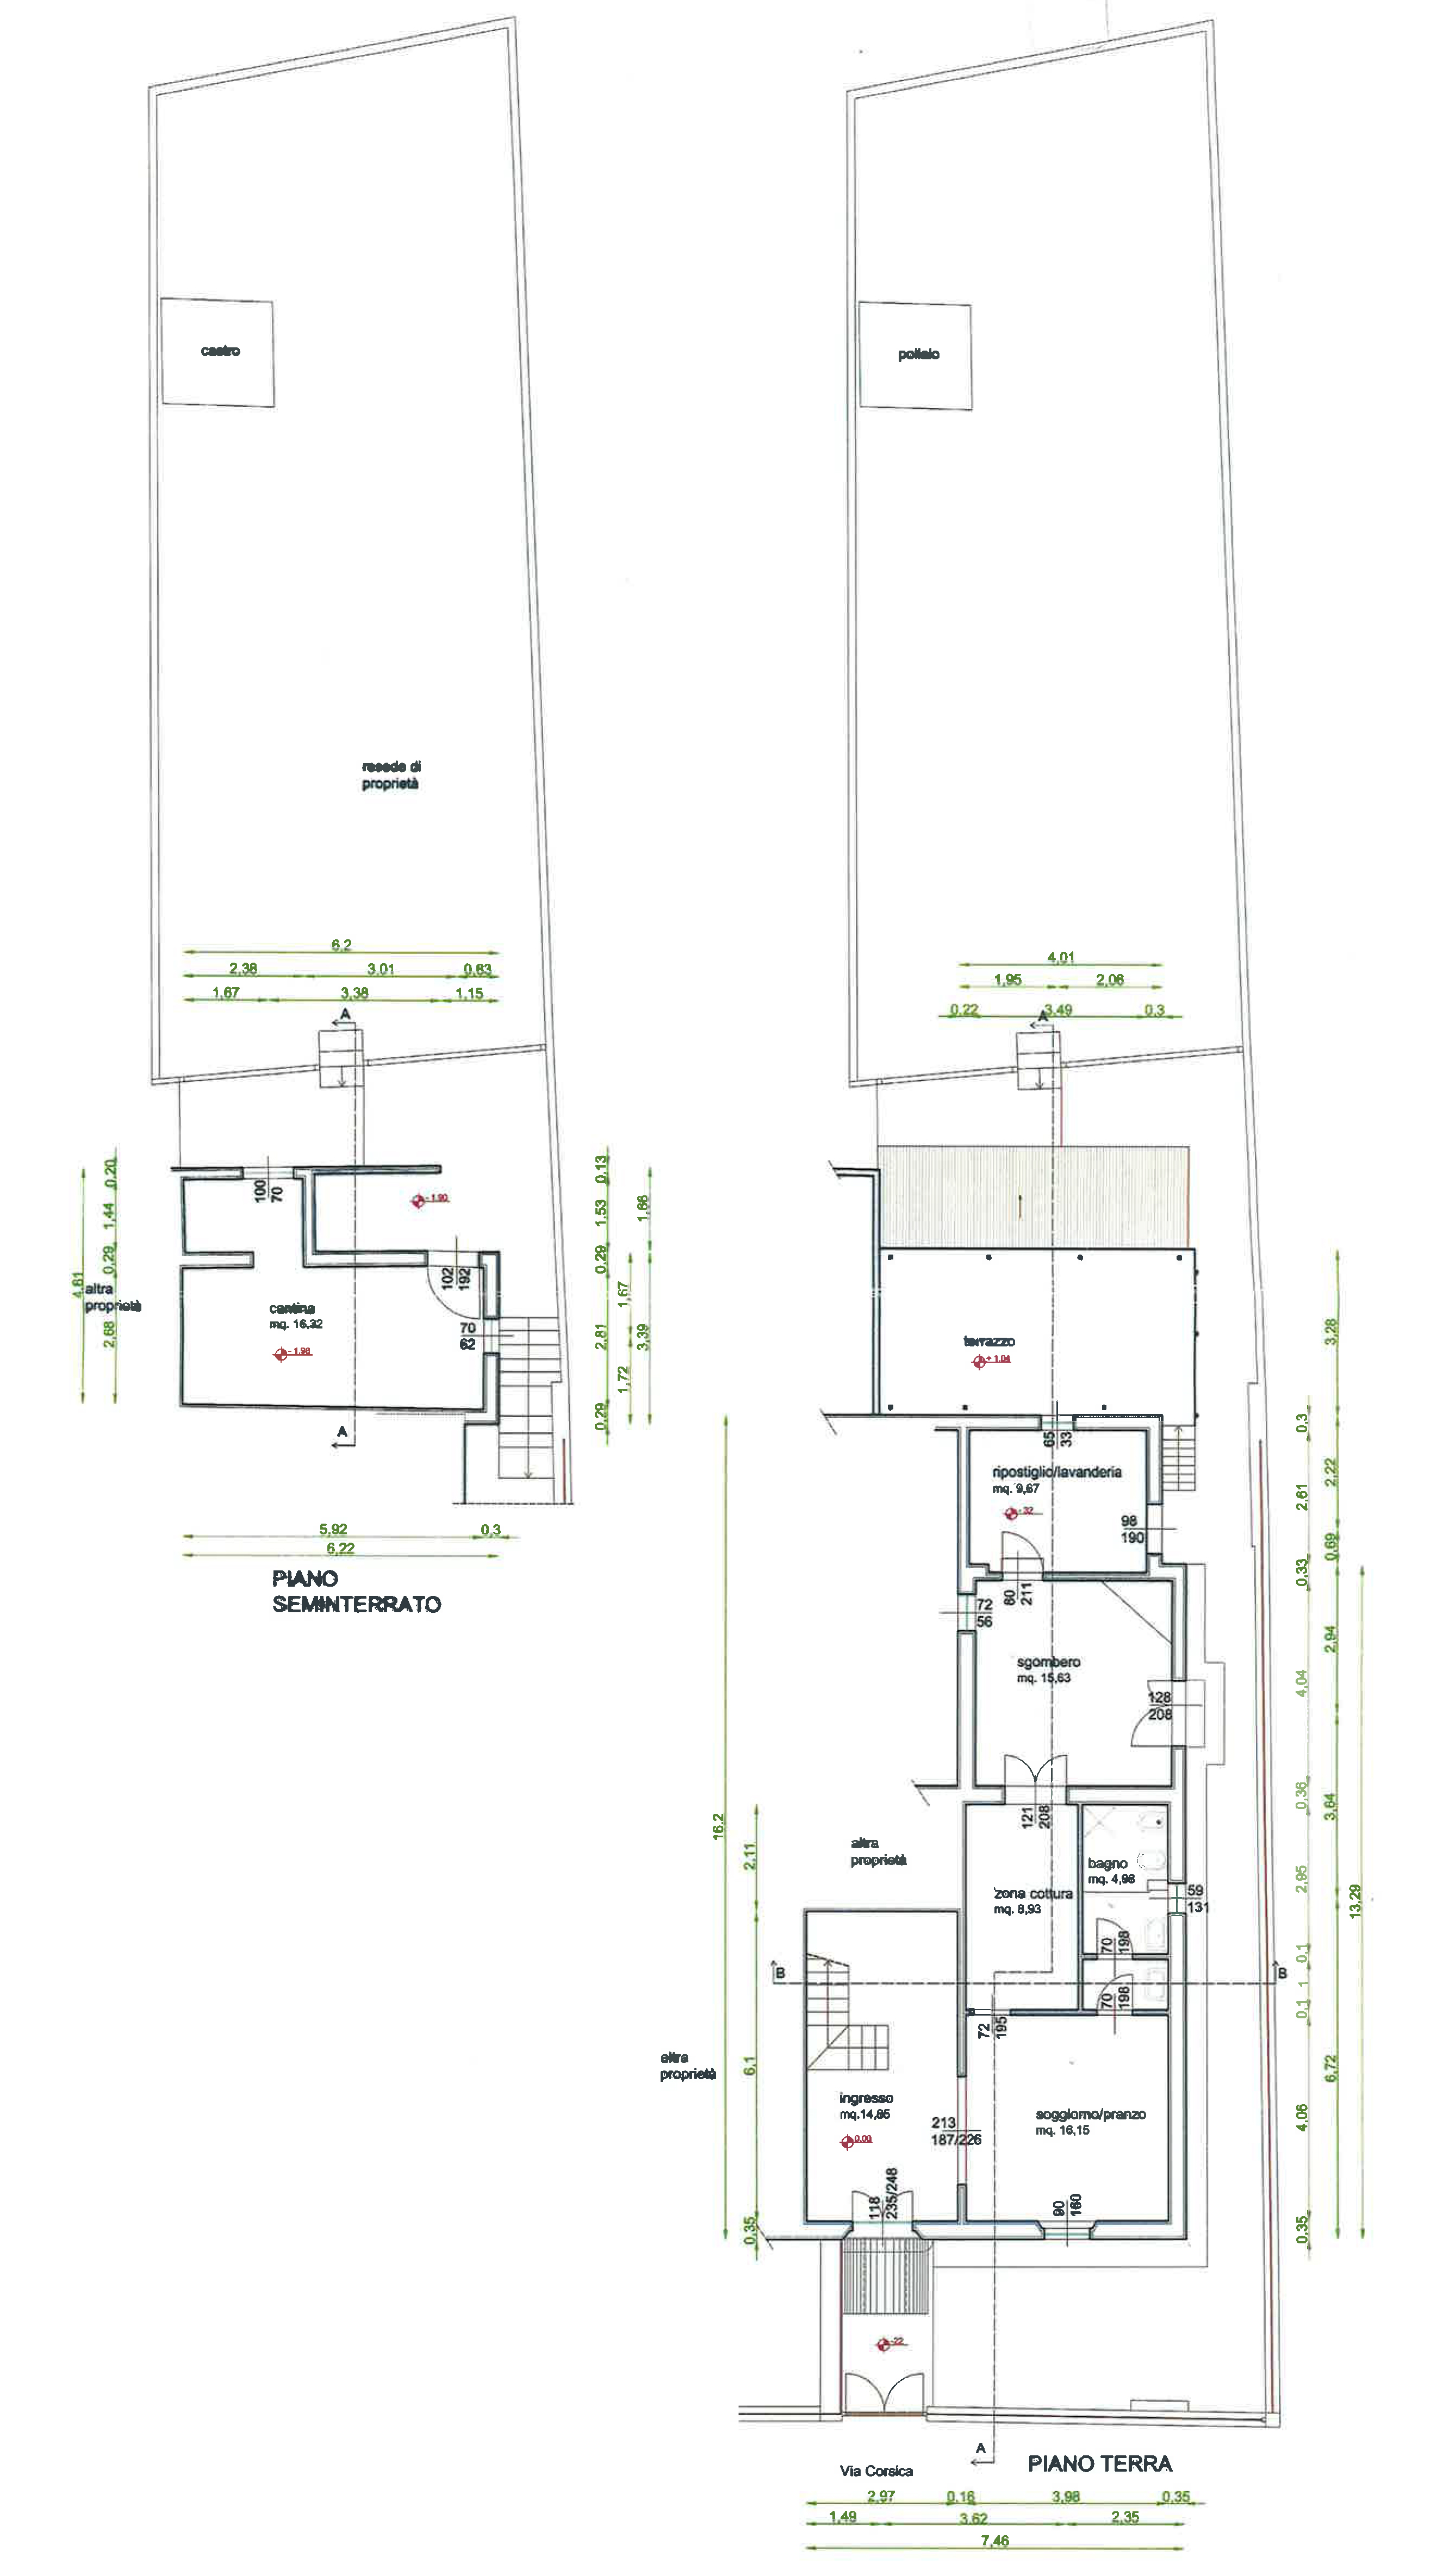 Plan 1/2 for ref. CA015B